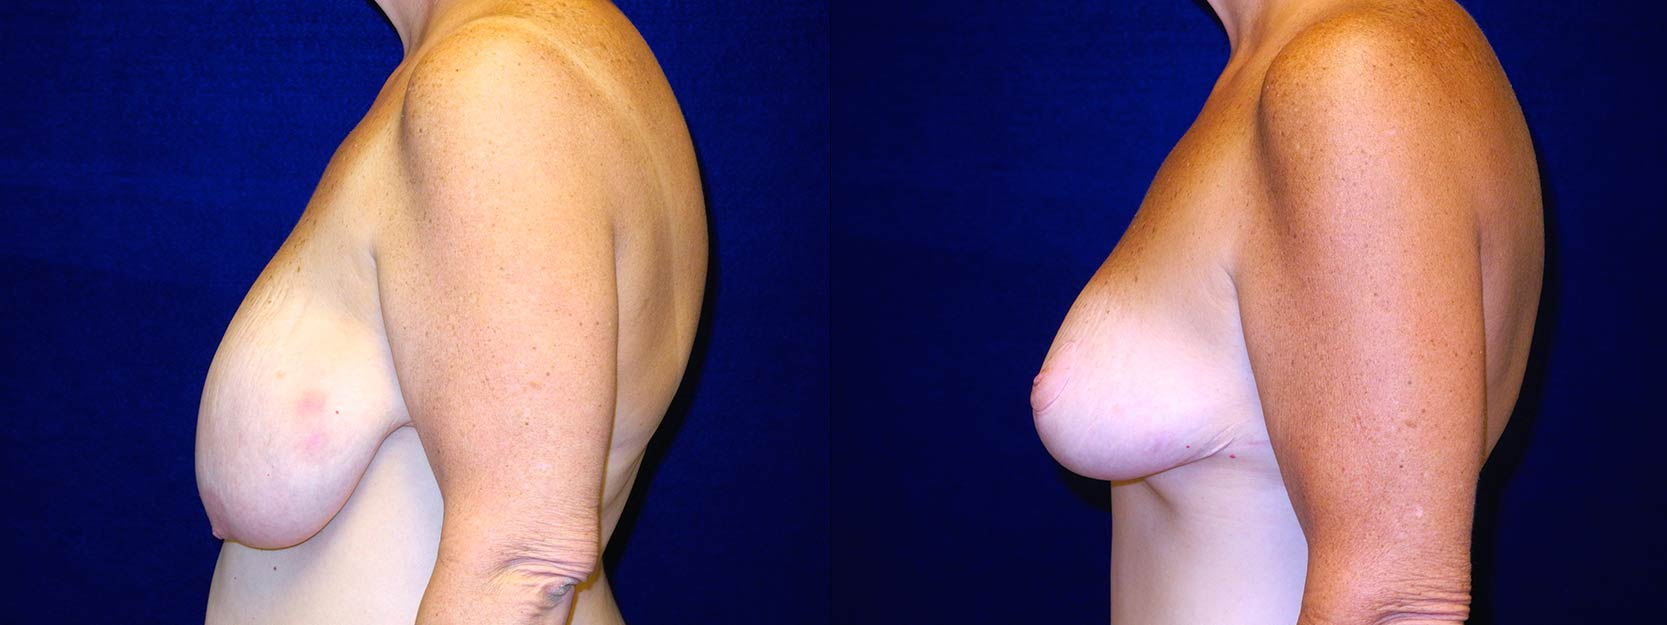 Left Profile View - Breast Reduction After Weight Loss